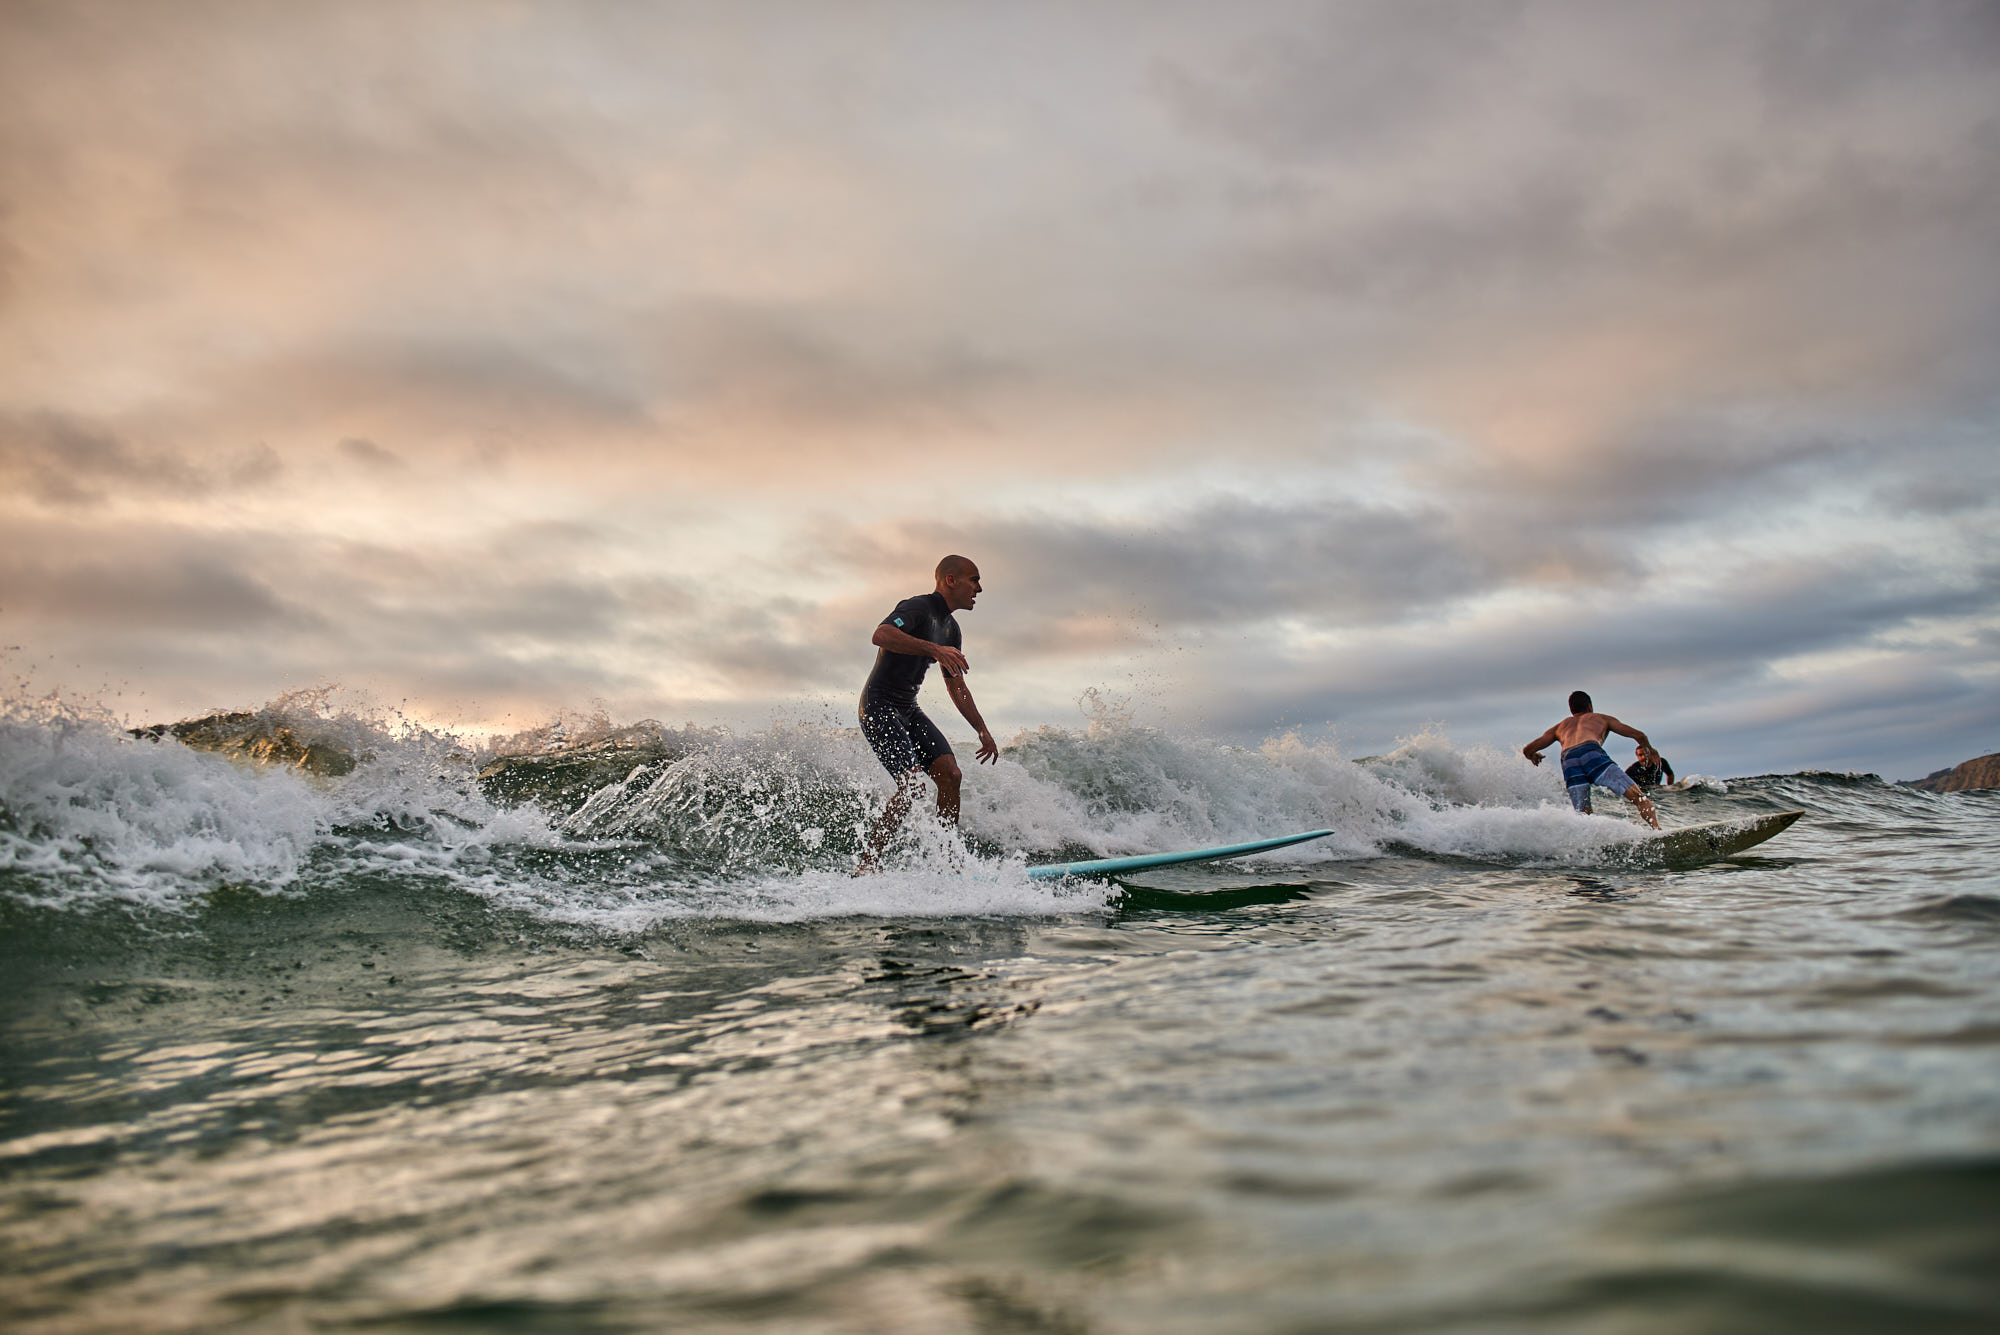 La Jolla Scripts Pier Surfing at Sunset - Photo from in the water.